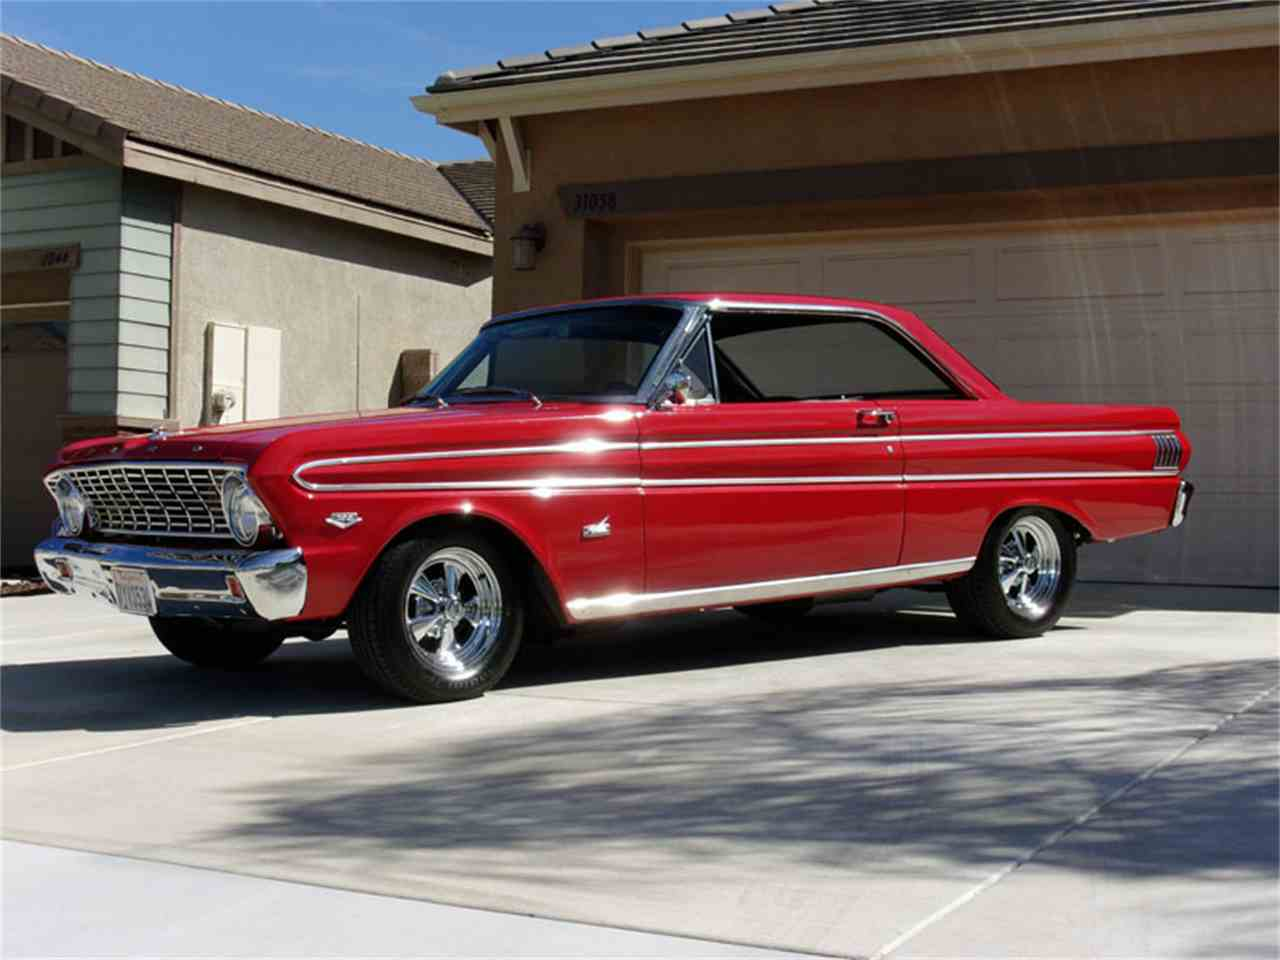 Trucks Under 5000 >> 1964 Ford Falcon Futura for Sale | ClassicCars.com | CC-1032336